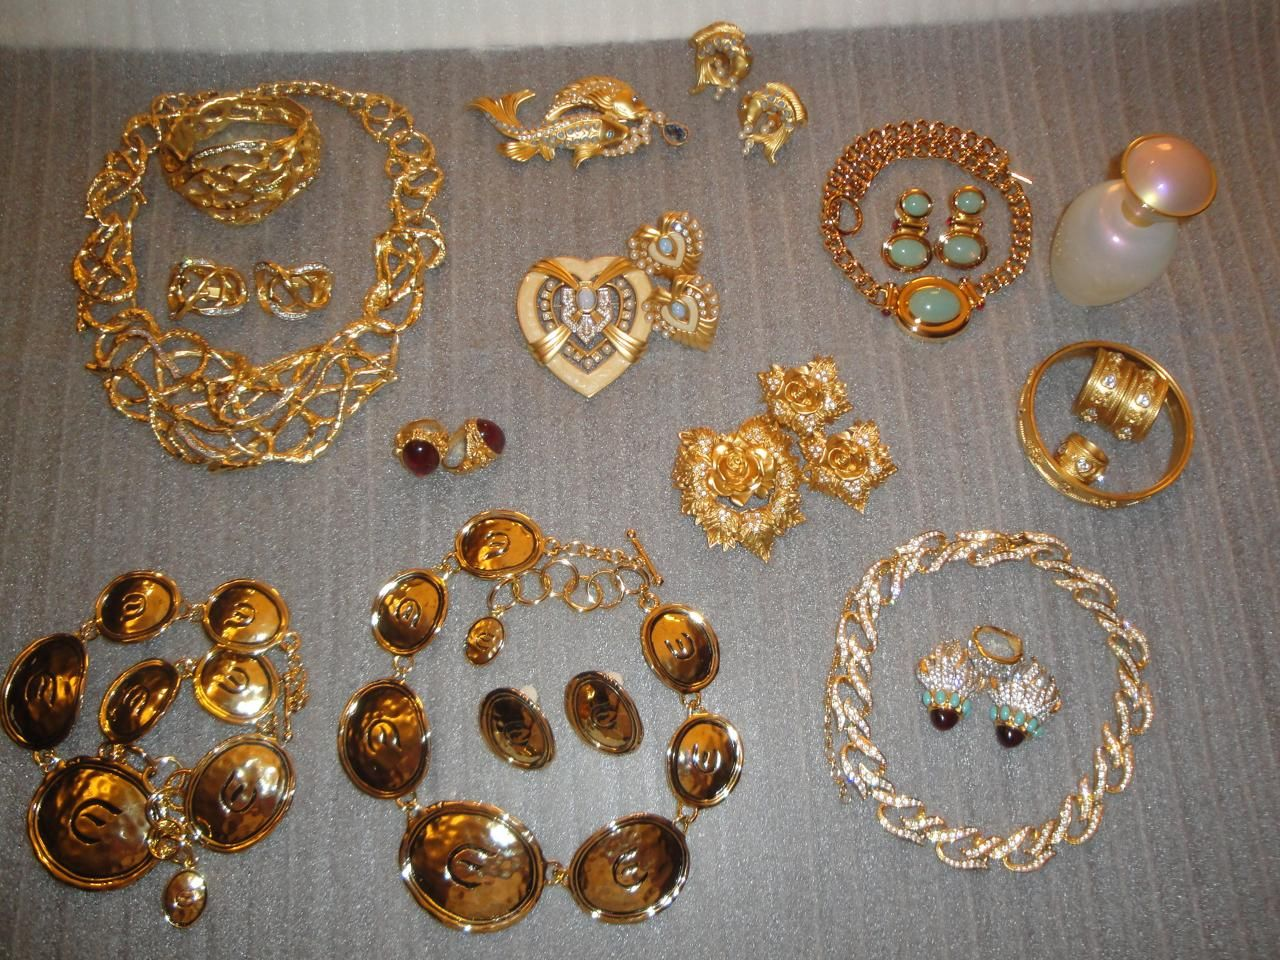 Image detail for -Taylor's Collections for Avon] 31 Piece Elizabeth Taylor Jewelry ...